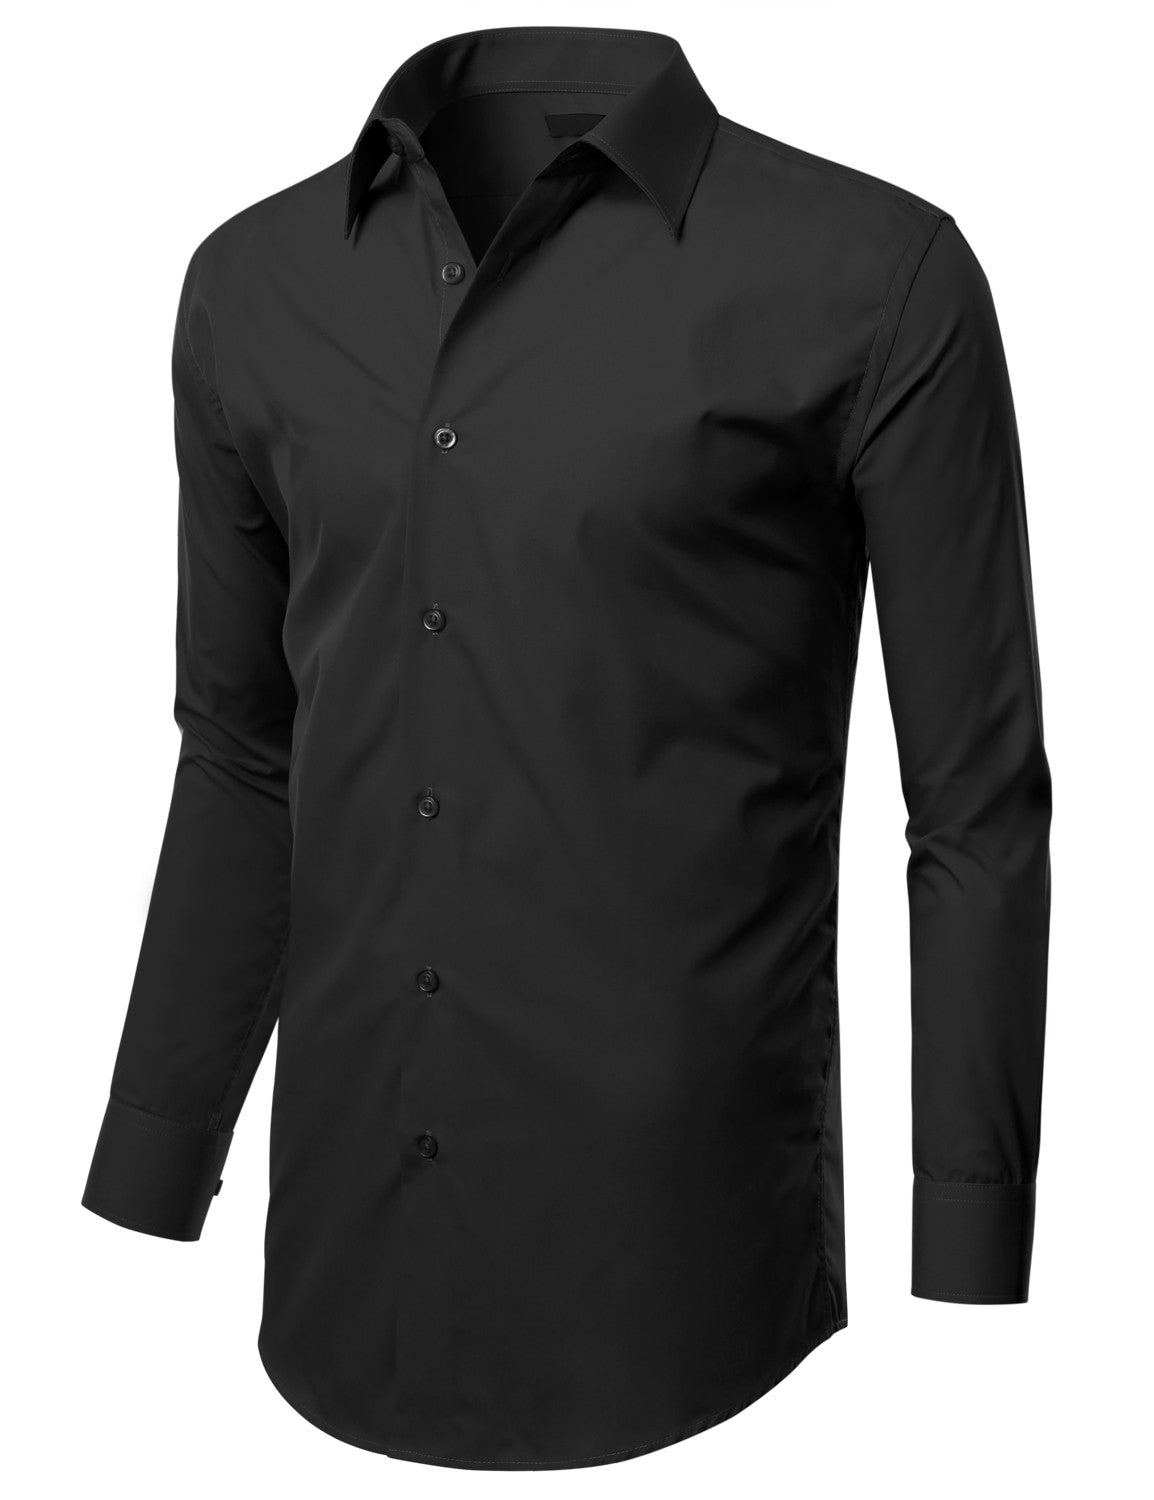 TC22BLACK Black Slim Fit Dress Shirt w/ Reversible Cuff (Big & Tall Available)- MONDAYSUIT